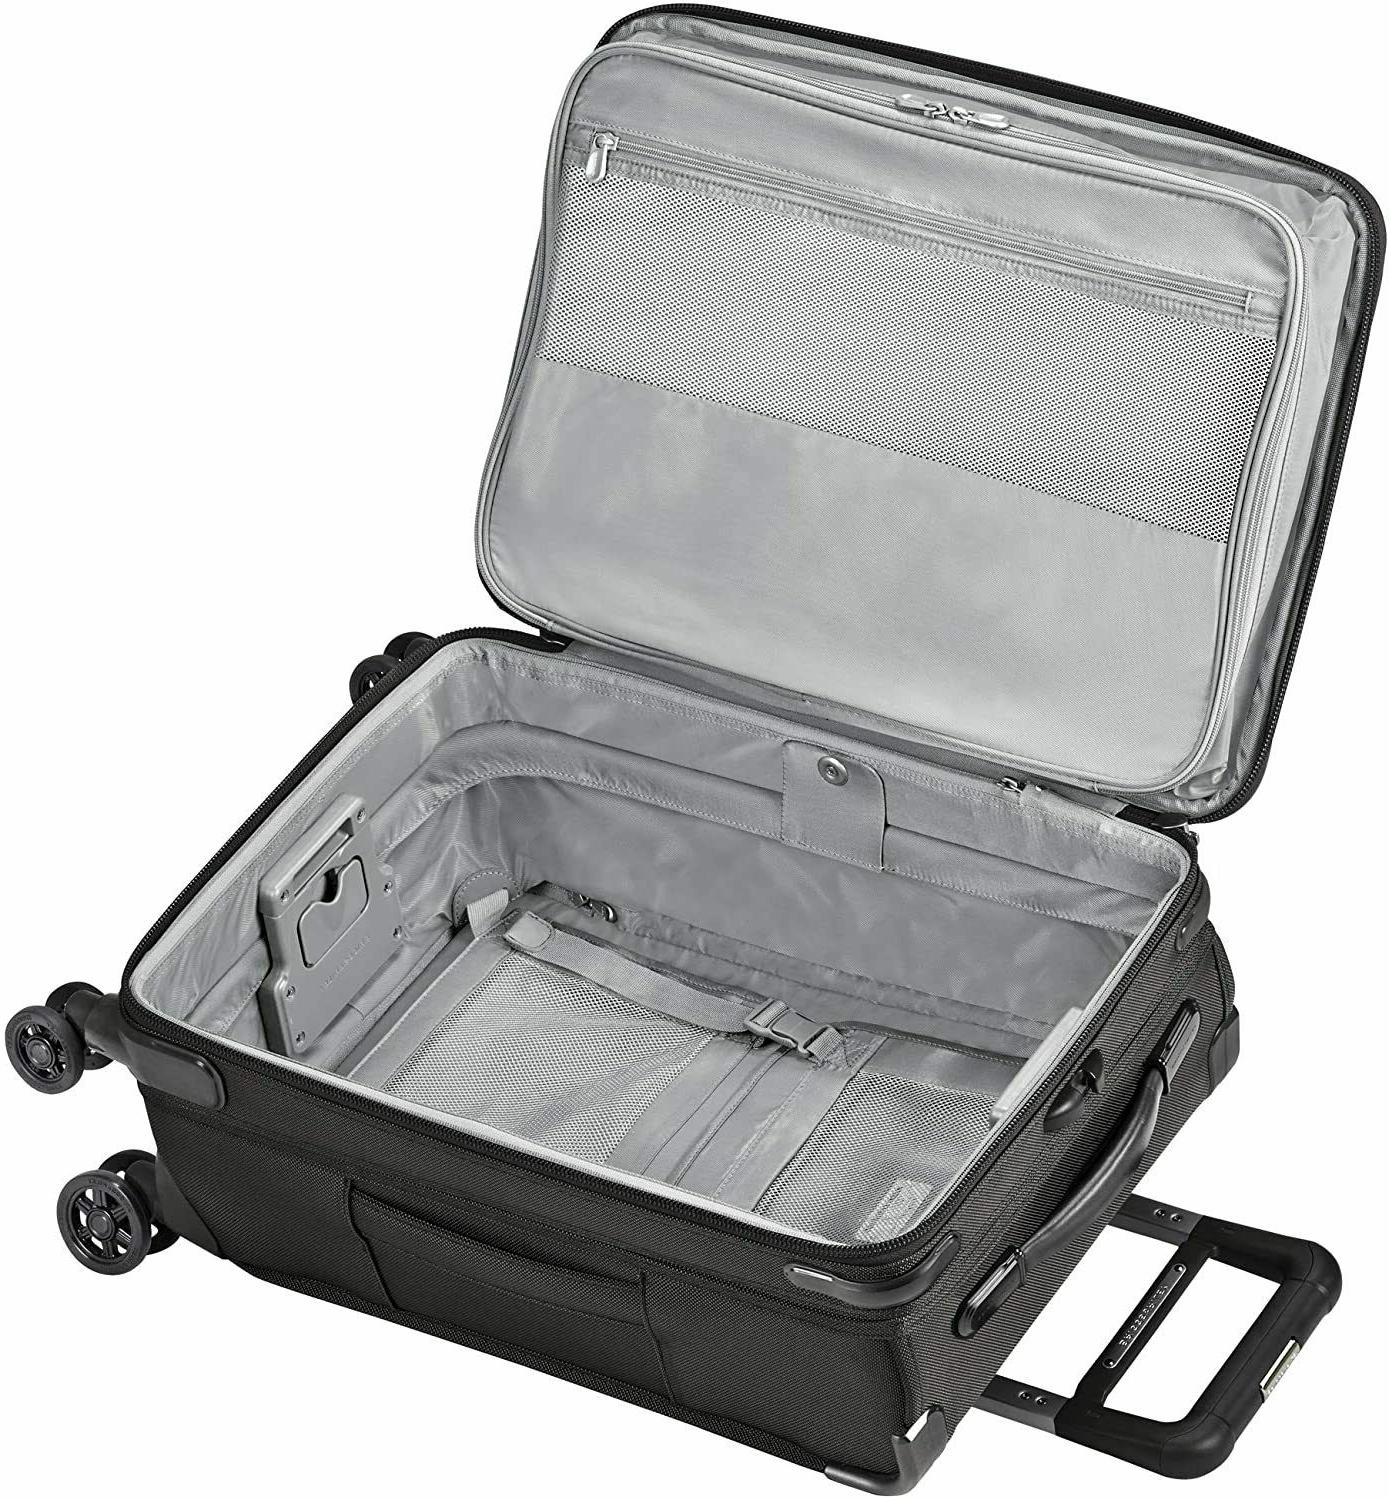 Briggs & Riley Carry-On Expandable 22 4 Spinner